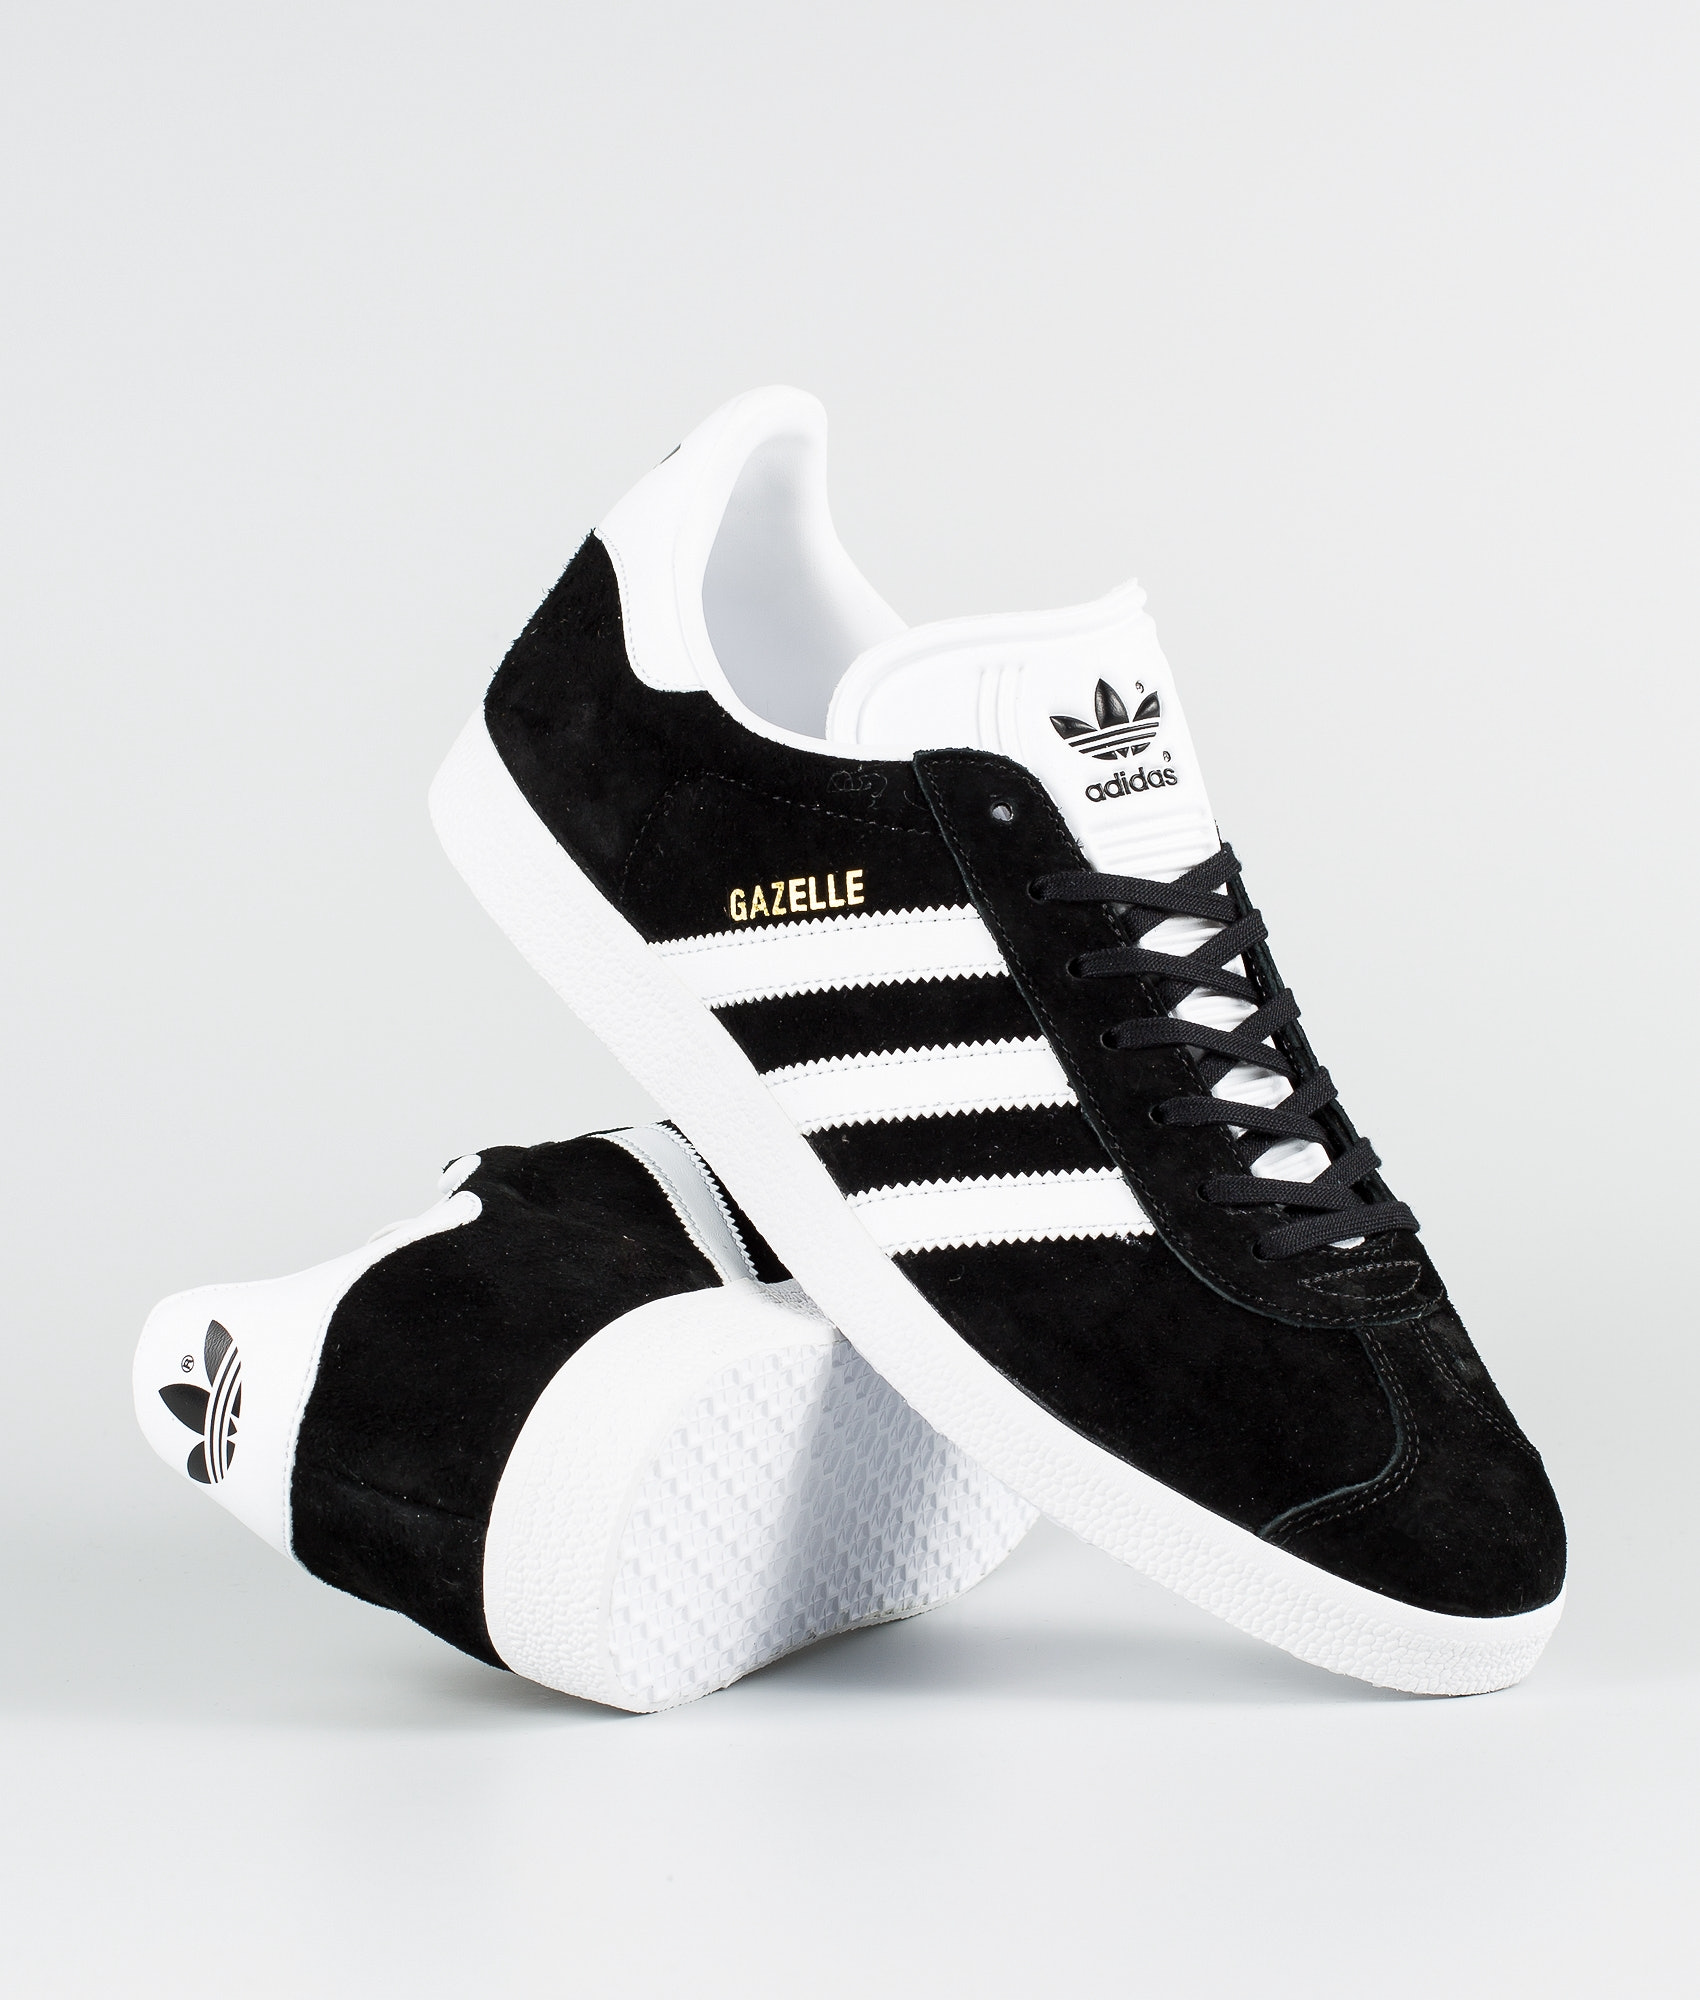 ccc0bc60ba9c3 Adidas Originals Gazelle Shoes Core Black/White/Goldmt